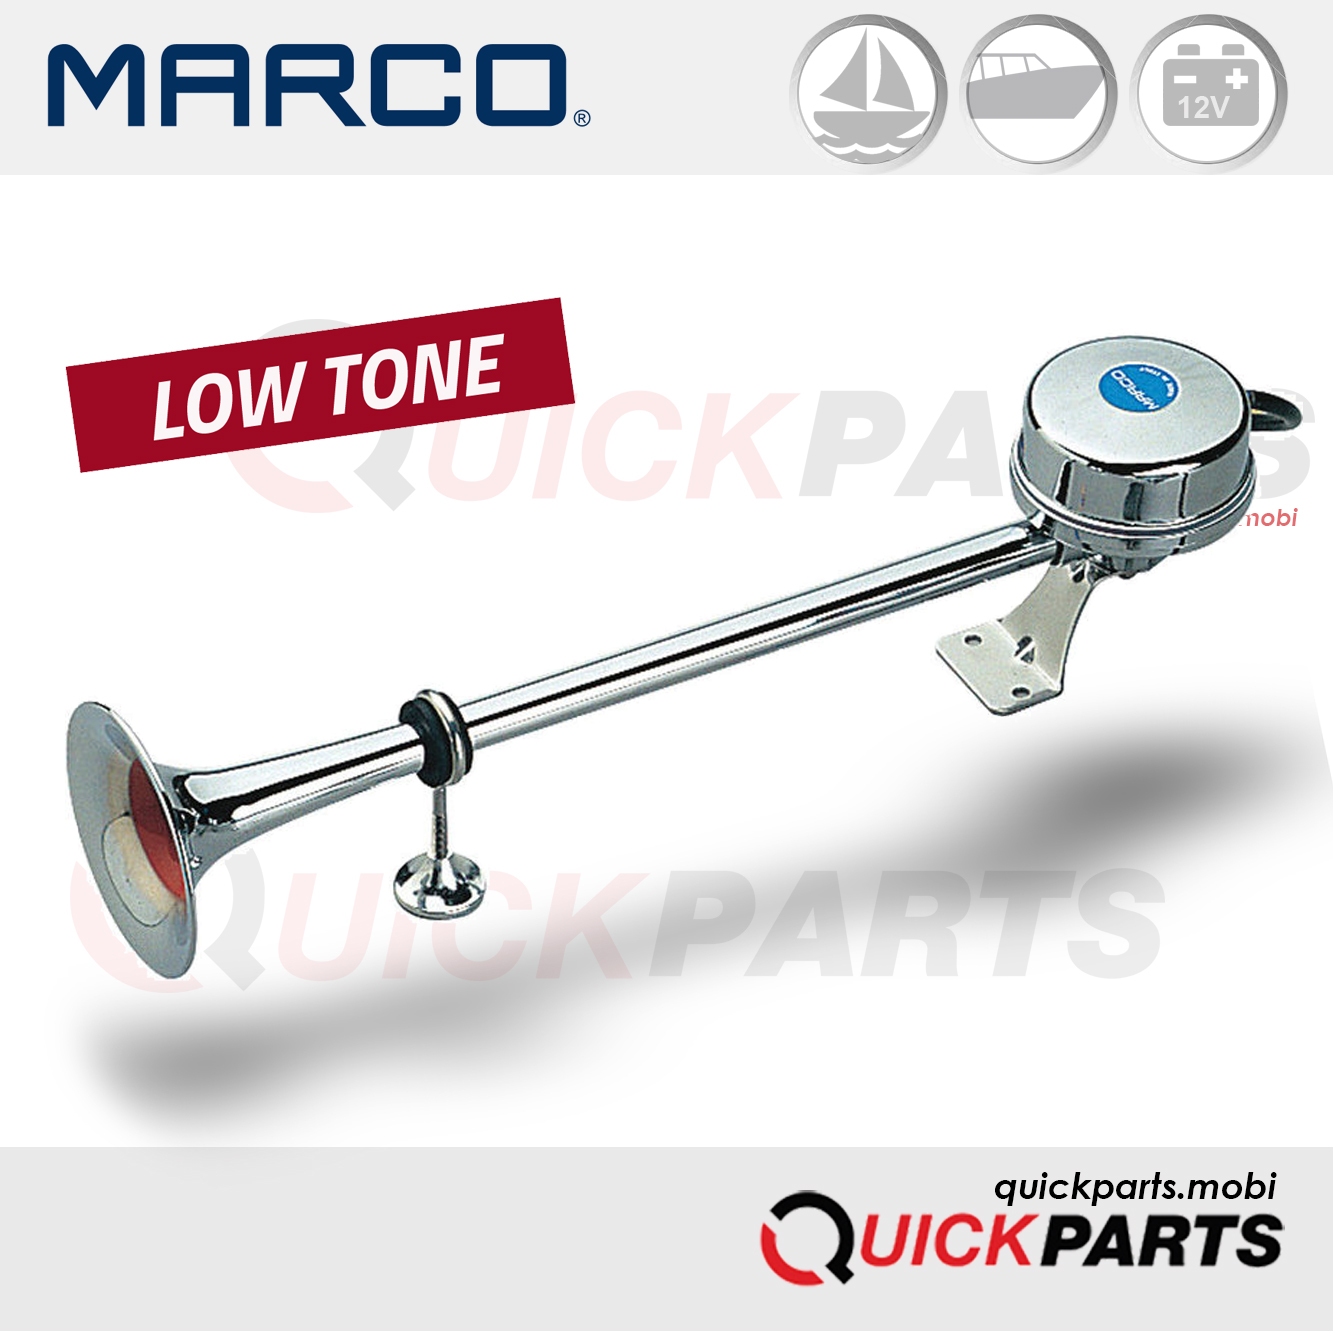 TOP QUALITYELECTRO-MAGNETIC HORN WITH STAINLESS STEEL TRUMPET (BOAT < 12 M) -12 VOLT